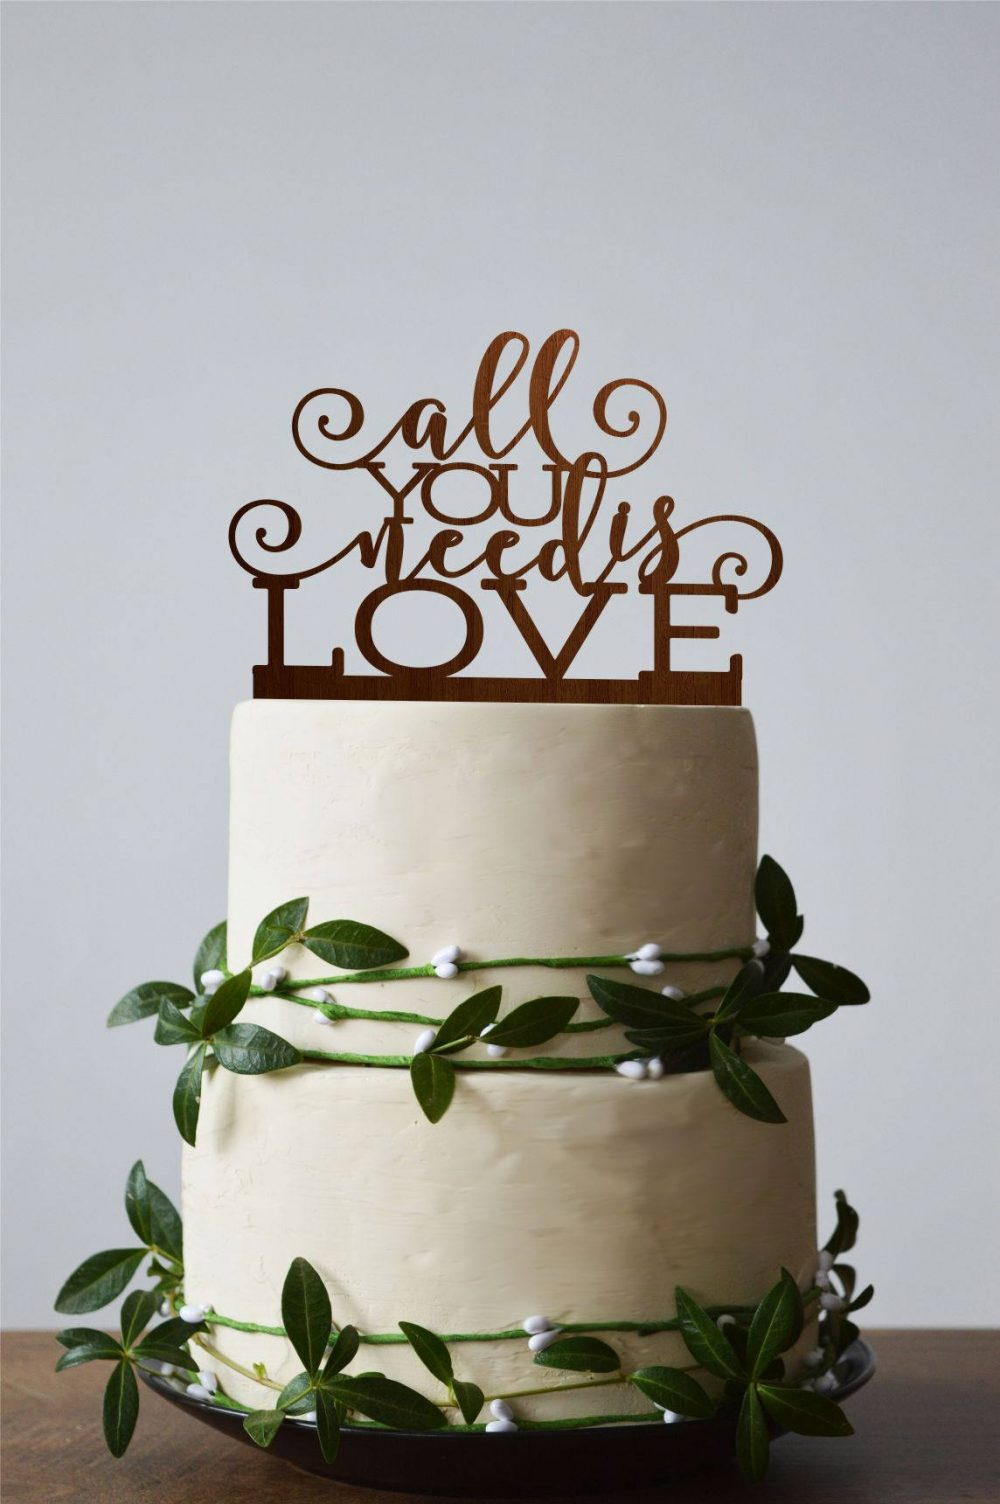 All You Need Is Love Cake Topper, Custom Wedding Calligraphy Wedding Toppers